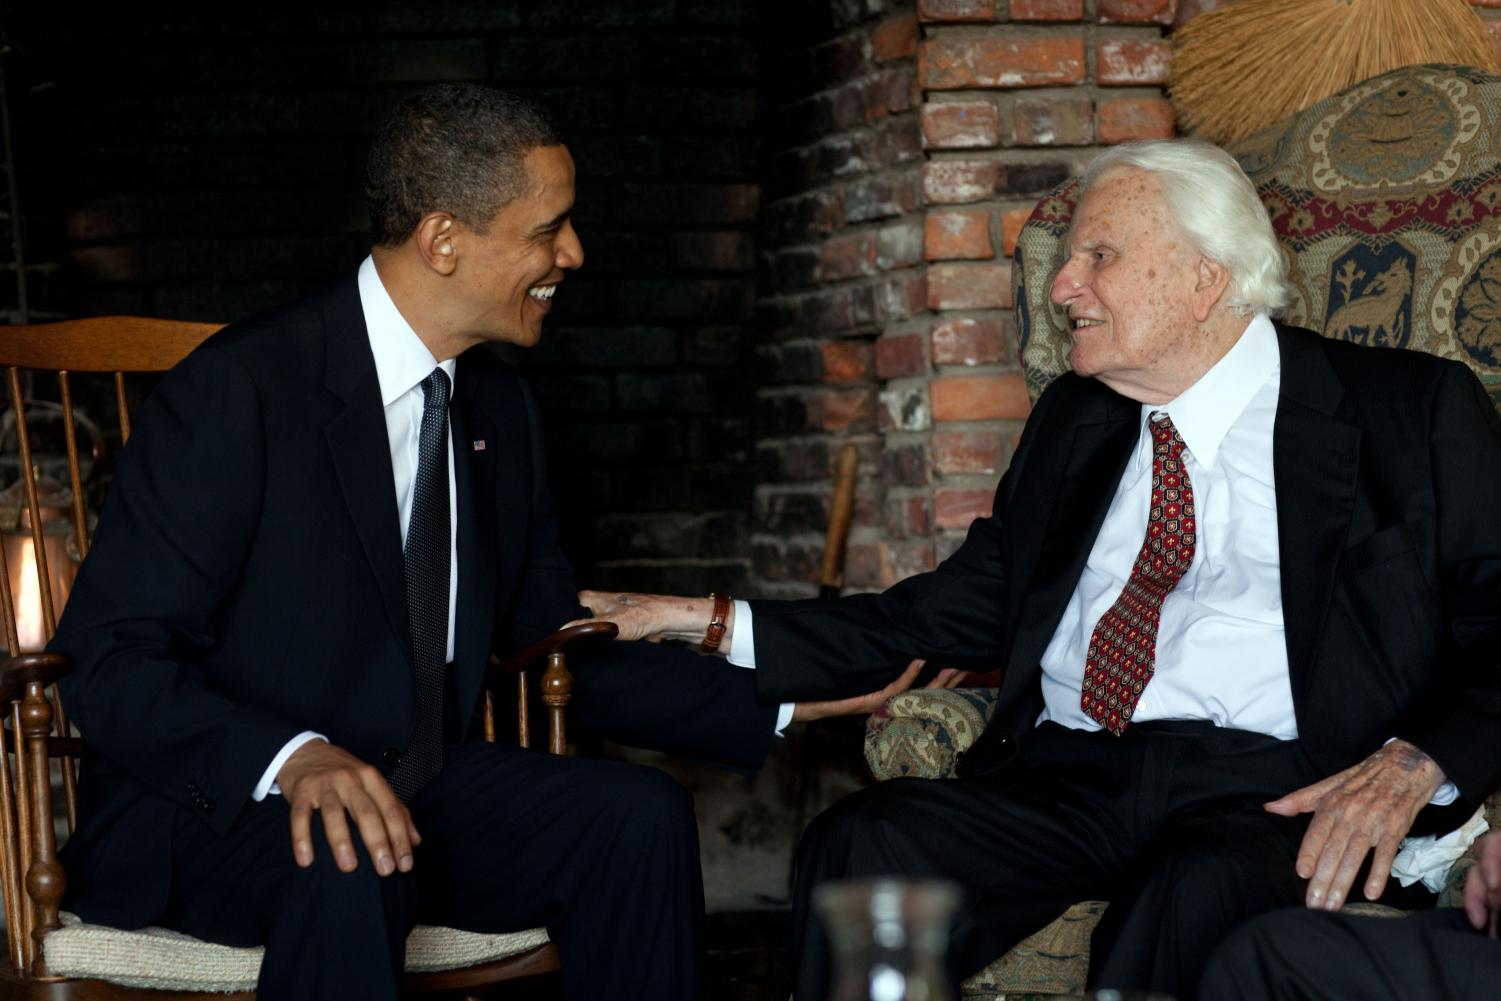 Meeting with former president Barack Obama, Billy Graham has a discussion in his home in Montreat, North Carolina. Graham recently passed away at age ninety-nine, leaving an evangelical legacy behind him.